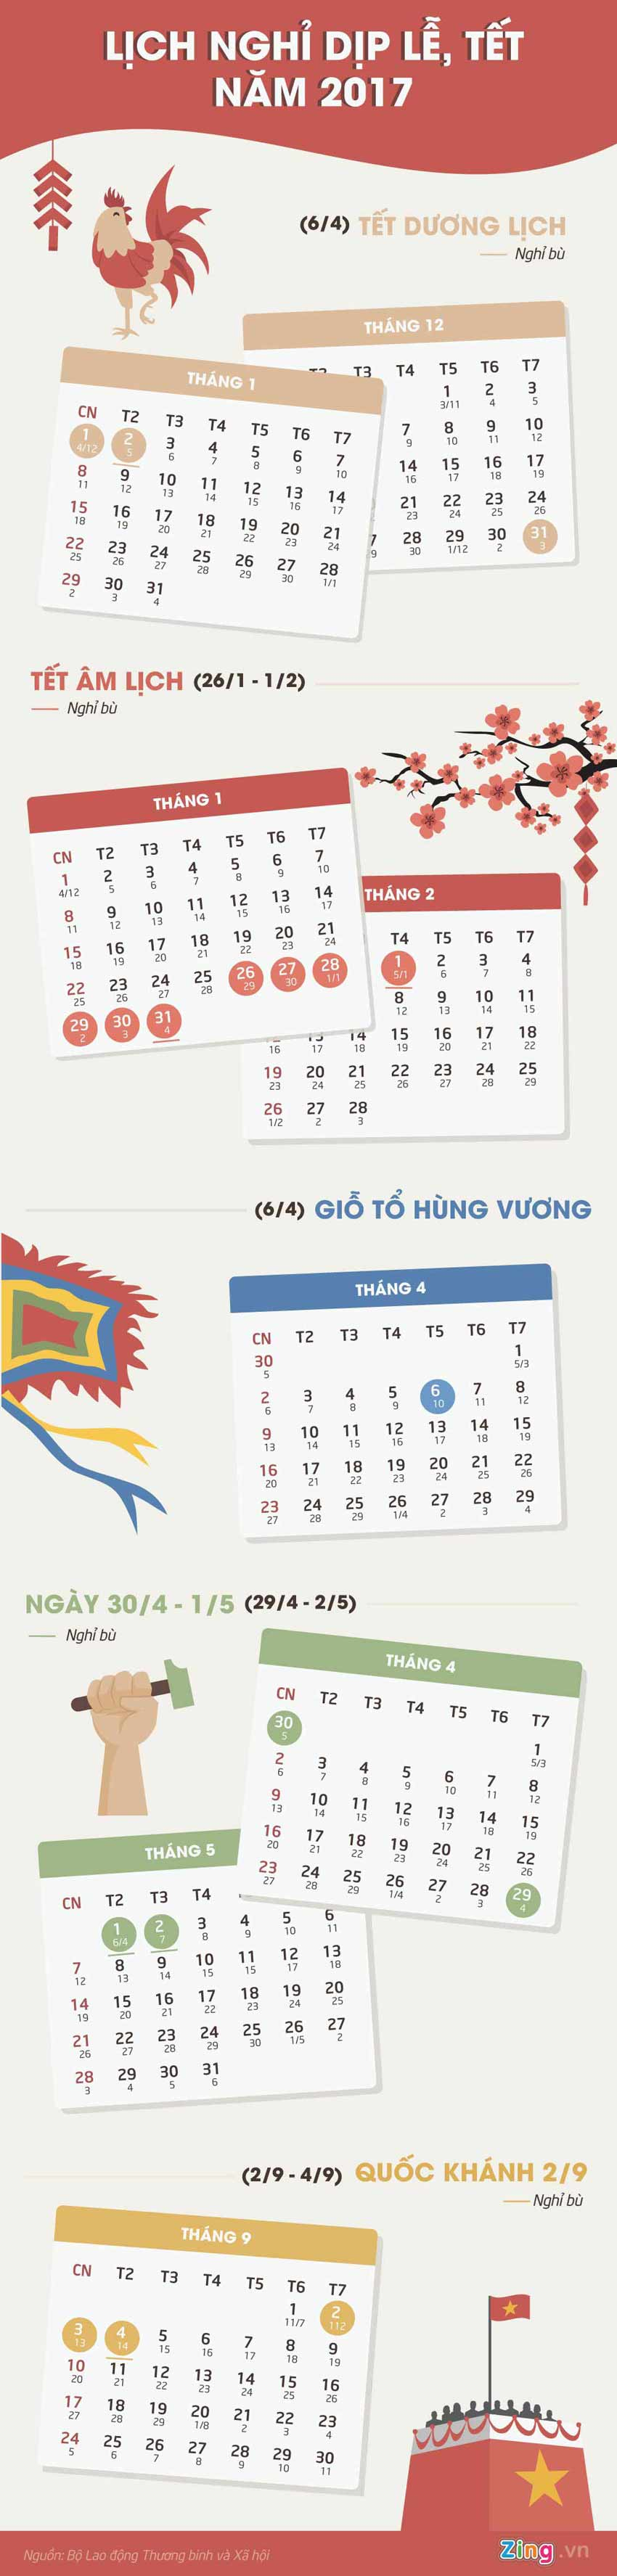 infographic: 18 ngay nghi trong cac dip le, tet nam 2017 hinh anh 1